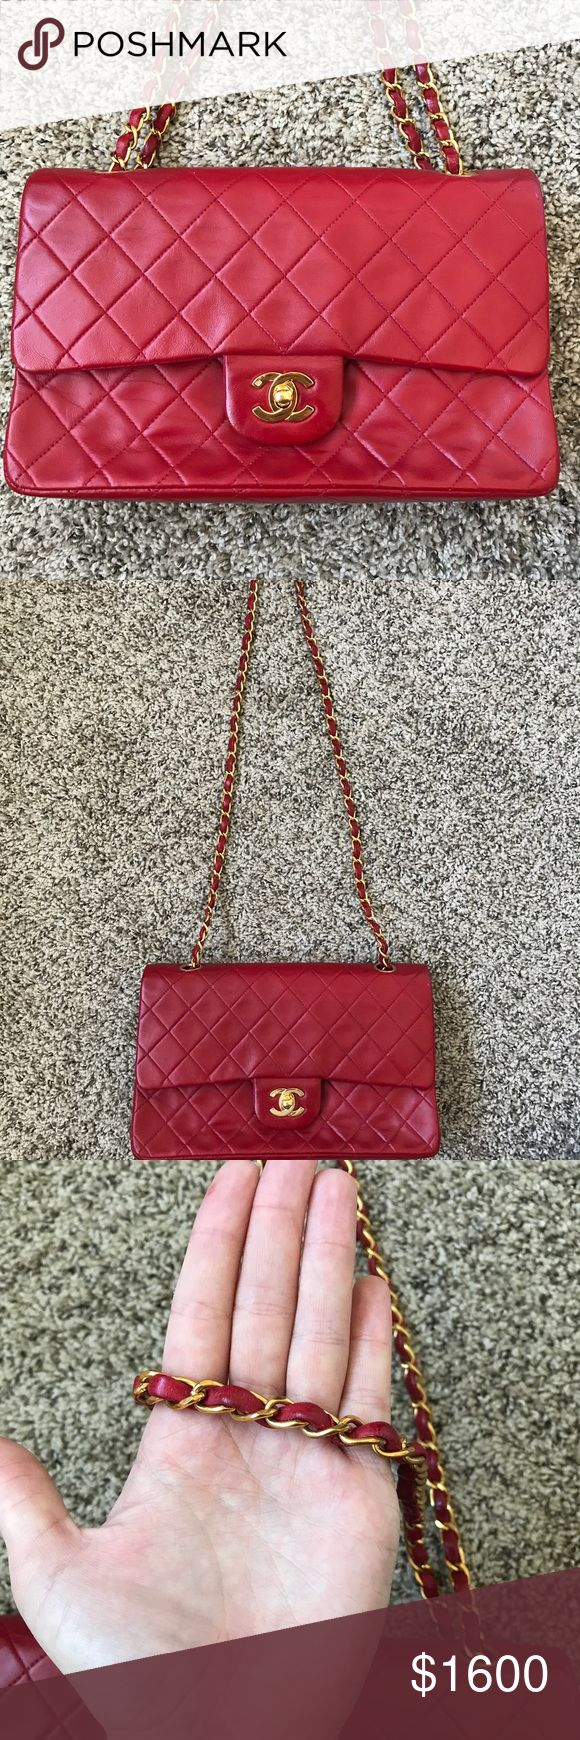 100% AUTHENTIC CHANEL Lambskin Double Flap Bag. CHANEL Red Lambskin Leather Classic Double Flap 255 Shoulder Bag A282. Vintage bag in AMAZING condition!! Minor scuffs shown in photos. 100% AUTHENTIC!!! Accepting offers! CHANEL Bags Shoulder Bags